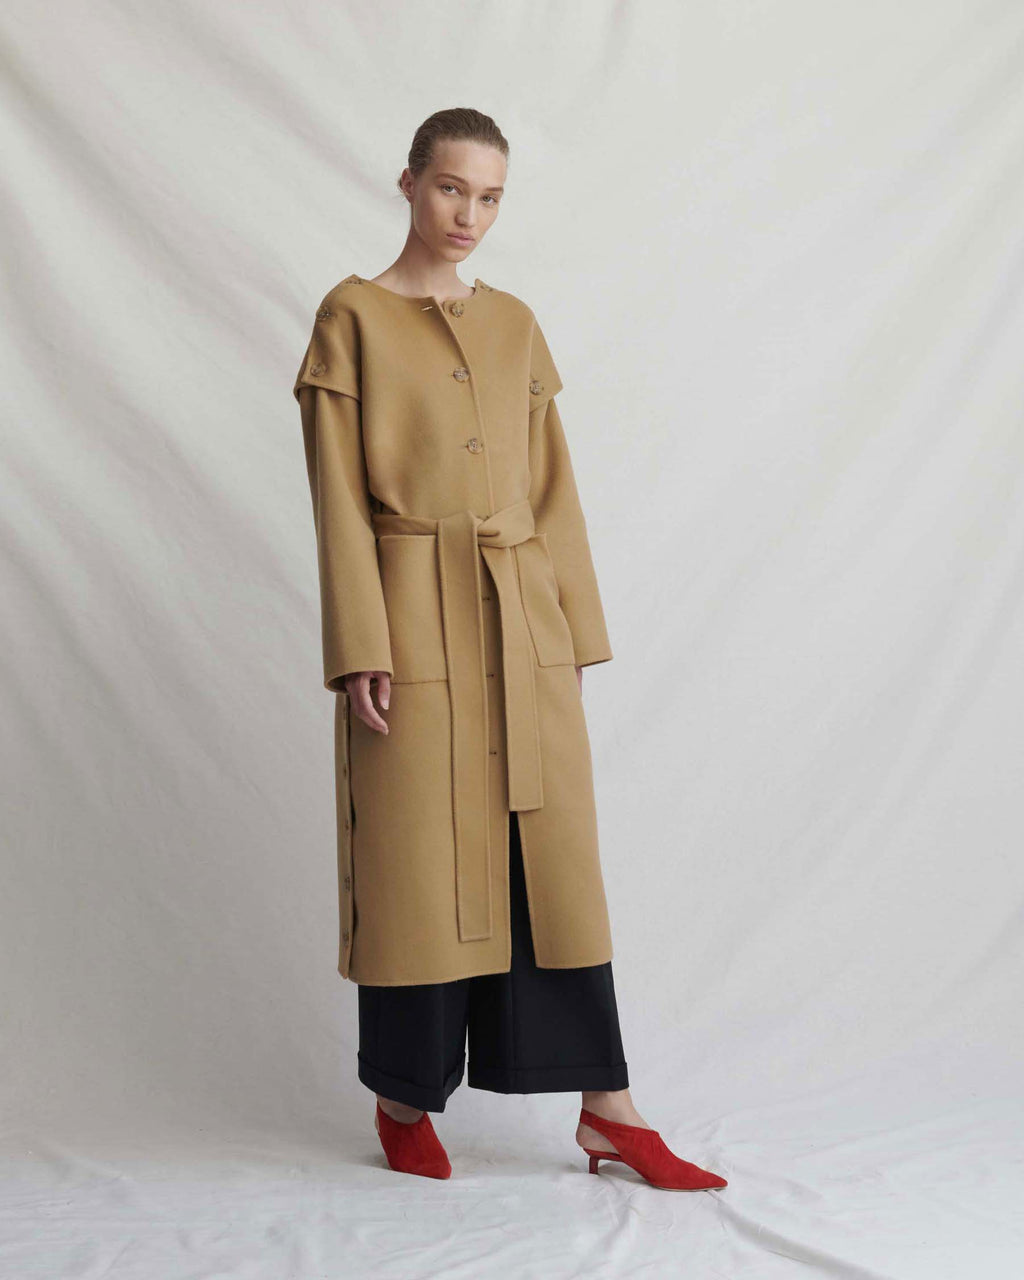 Simone Camel Coat - Exclusive